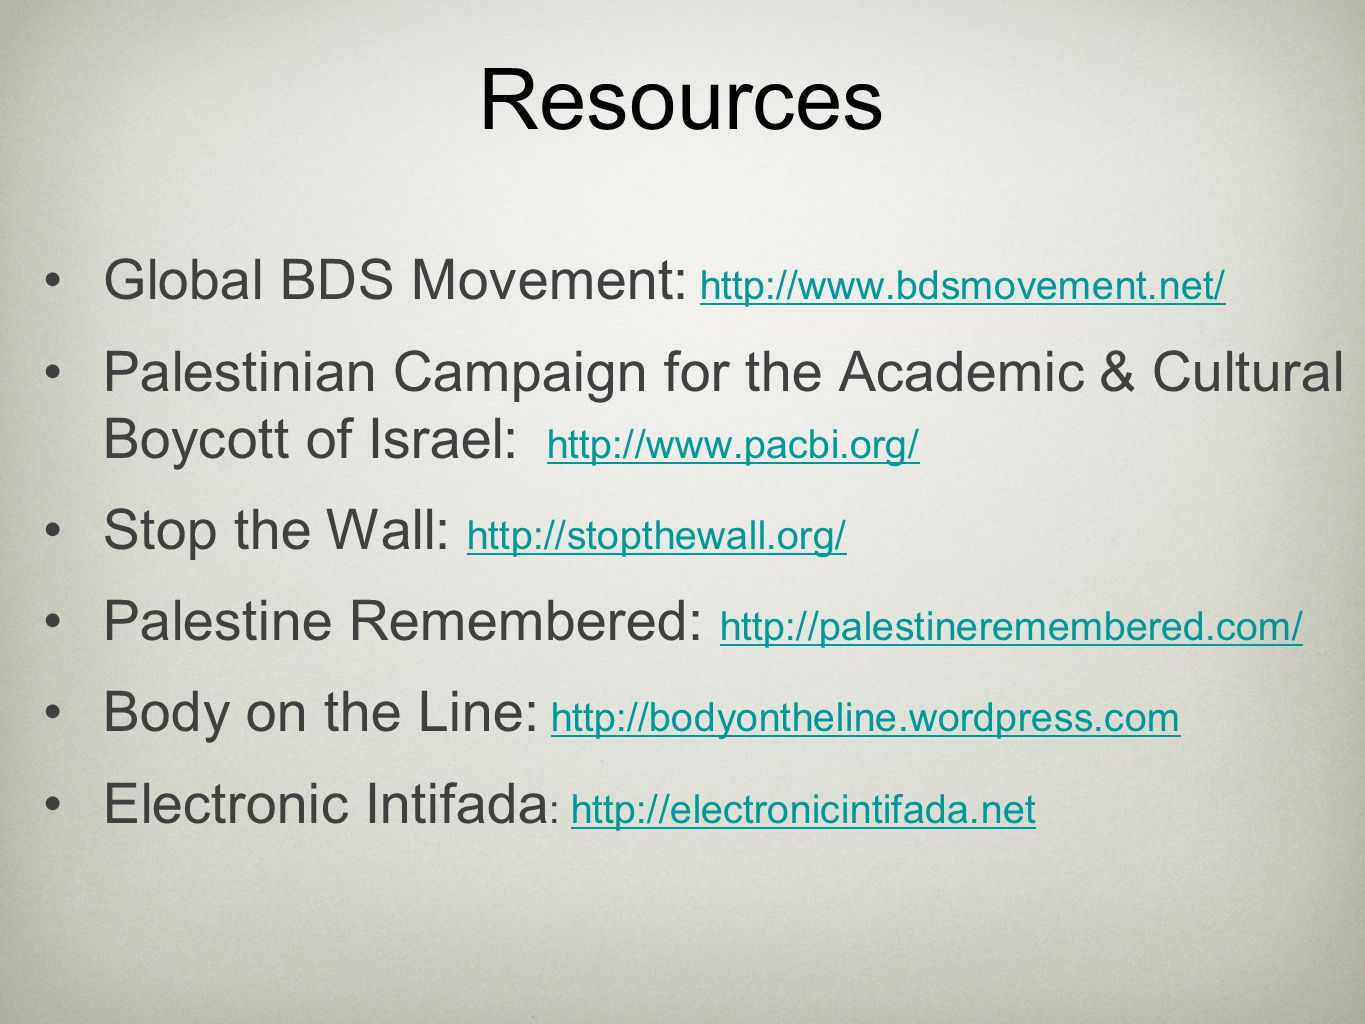 Resources Global BDS Movement: http://www.bdsmovement.net/http://www.bdsmovement.net/ Palestinian Campaign for the Academic & Cultural Boycott of Israel: http://www.pacbi.org/http://www.pacbi.org/ Stop the Wall: http://stopthewall.org/ http://stopthewall.org/ Palestine Remembered: http://palestineremembered.com/ http://palestineremembered.com/ Body on the Line: http://bodyontheline.wordpress.comhttp://bodyontheline.wordpress.com Electronic Intifada : http://electronicintifada.nethttp://electronicintifada.net